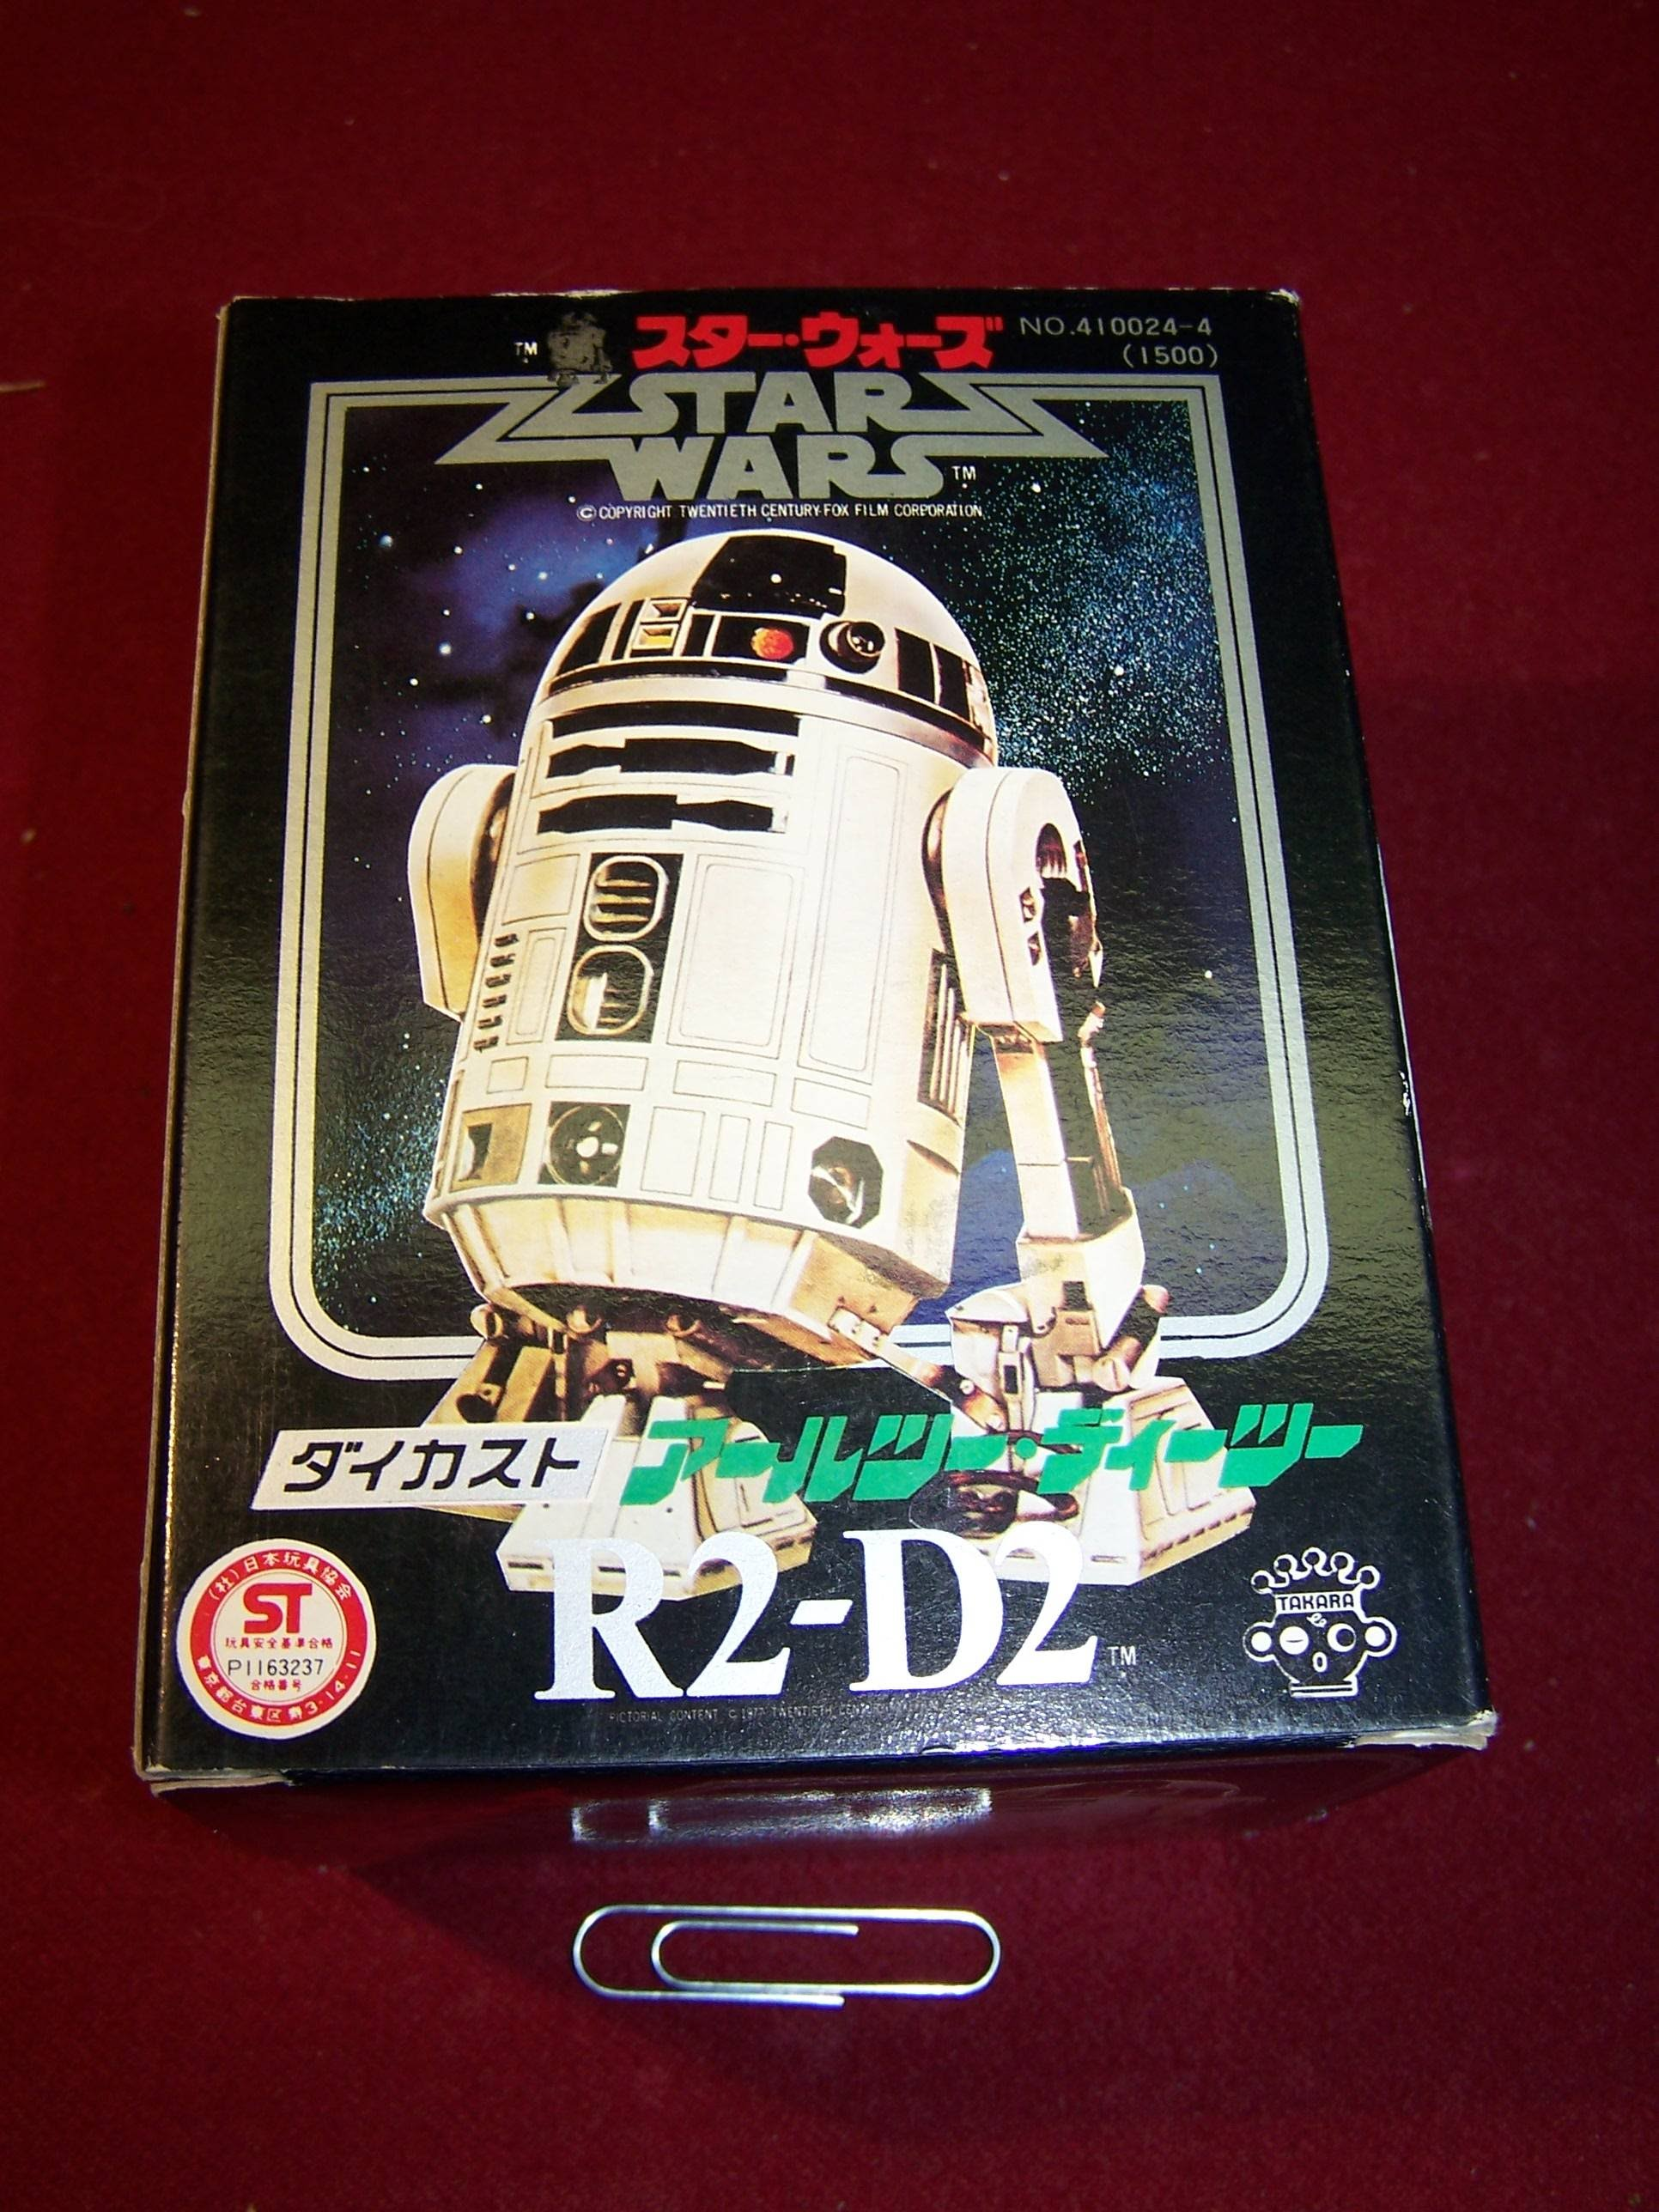 r2d2movieslideviewerboxfront.jpg